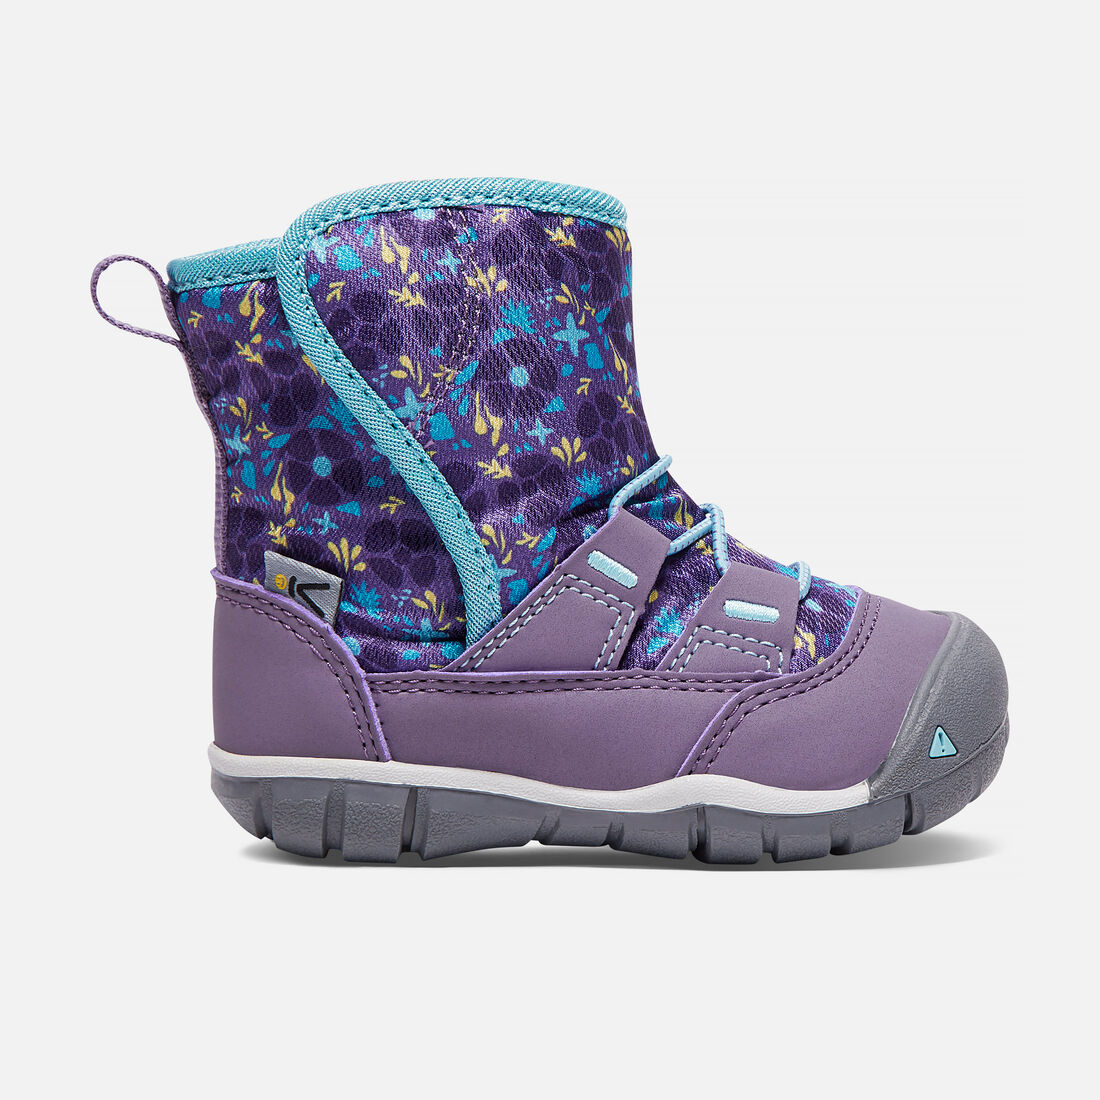 b7202f09196d Toddlers  Peek-A-Boot in Montana Grape Aqua Haze - large view